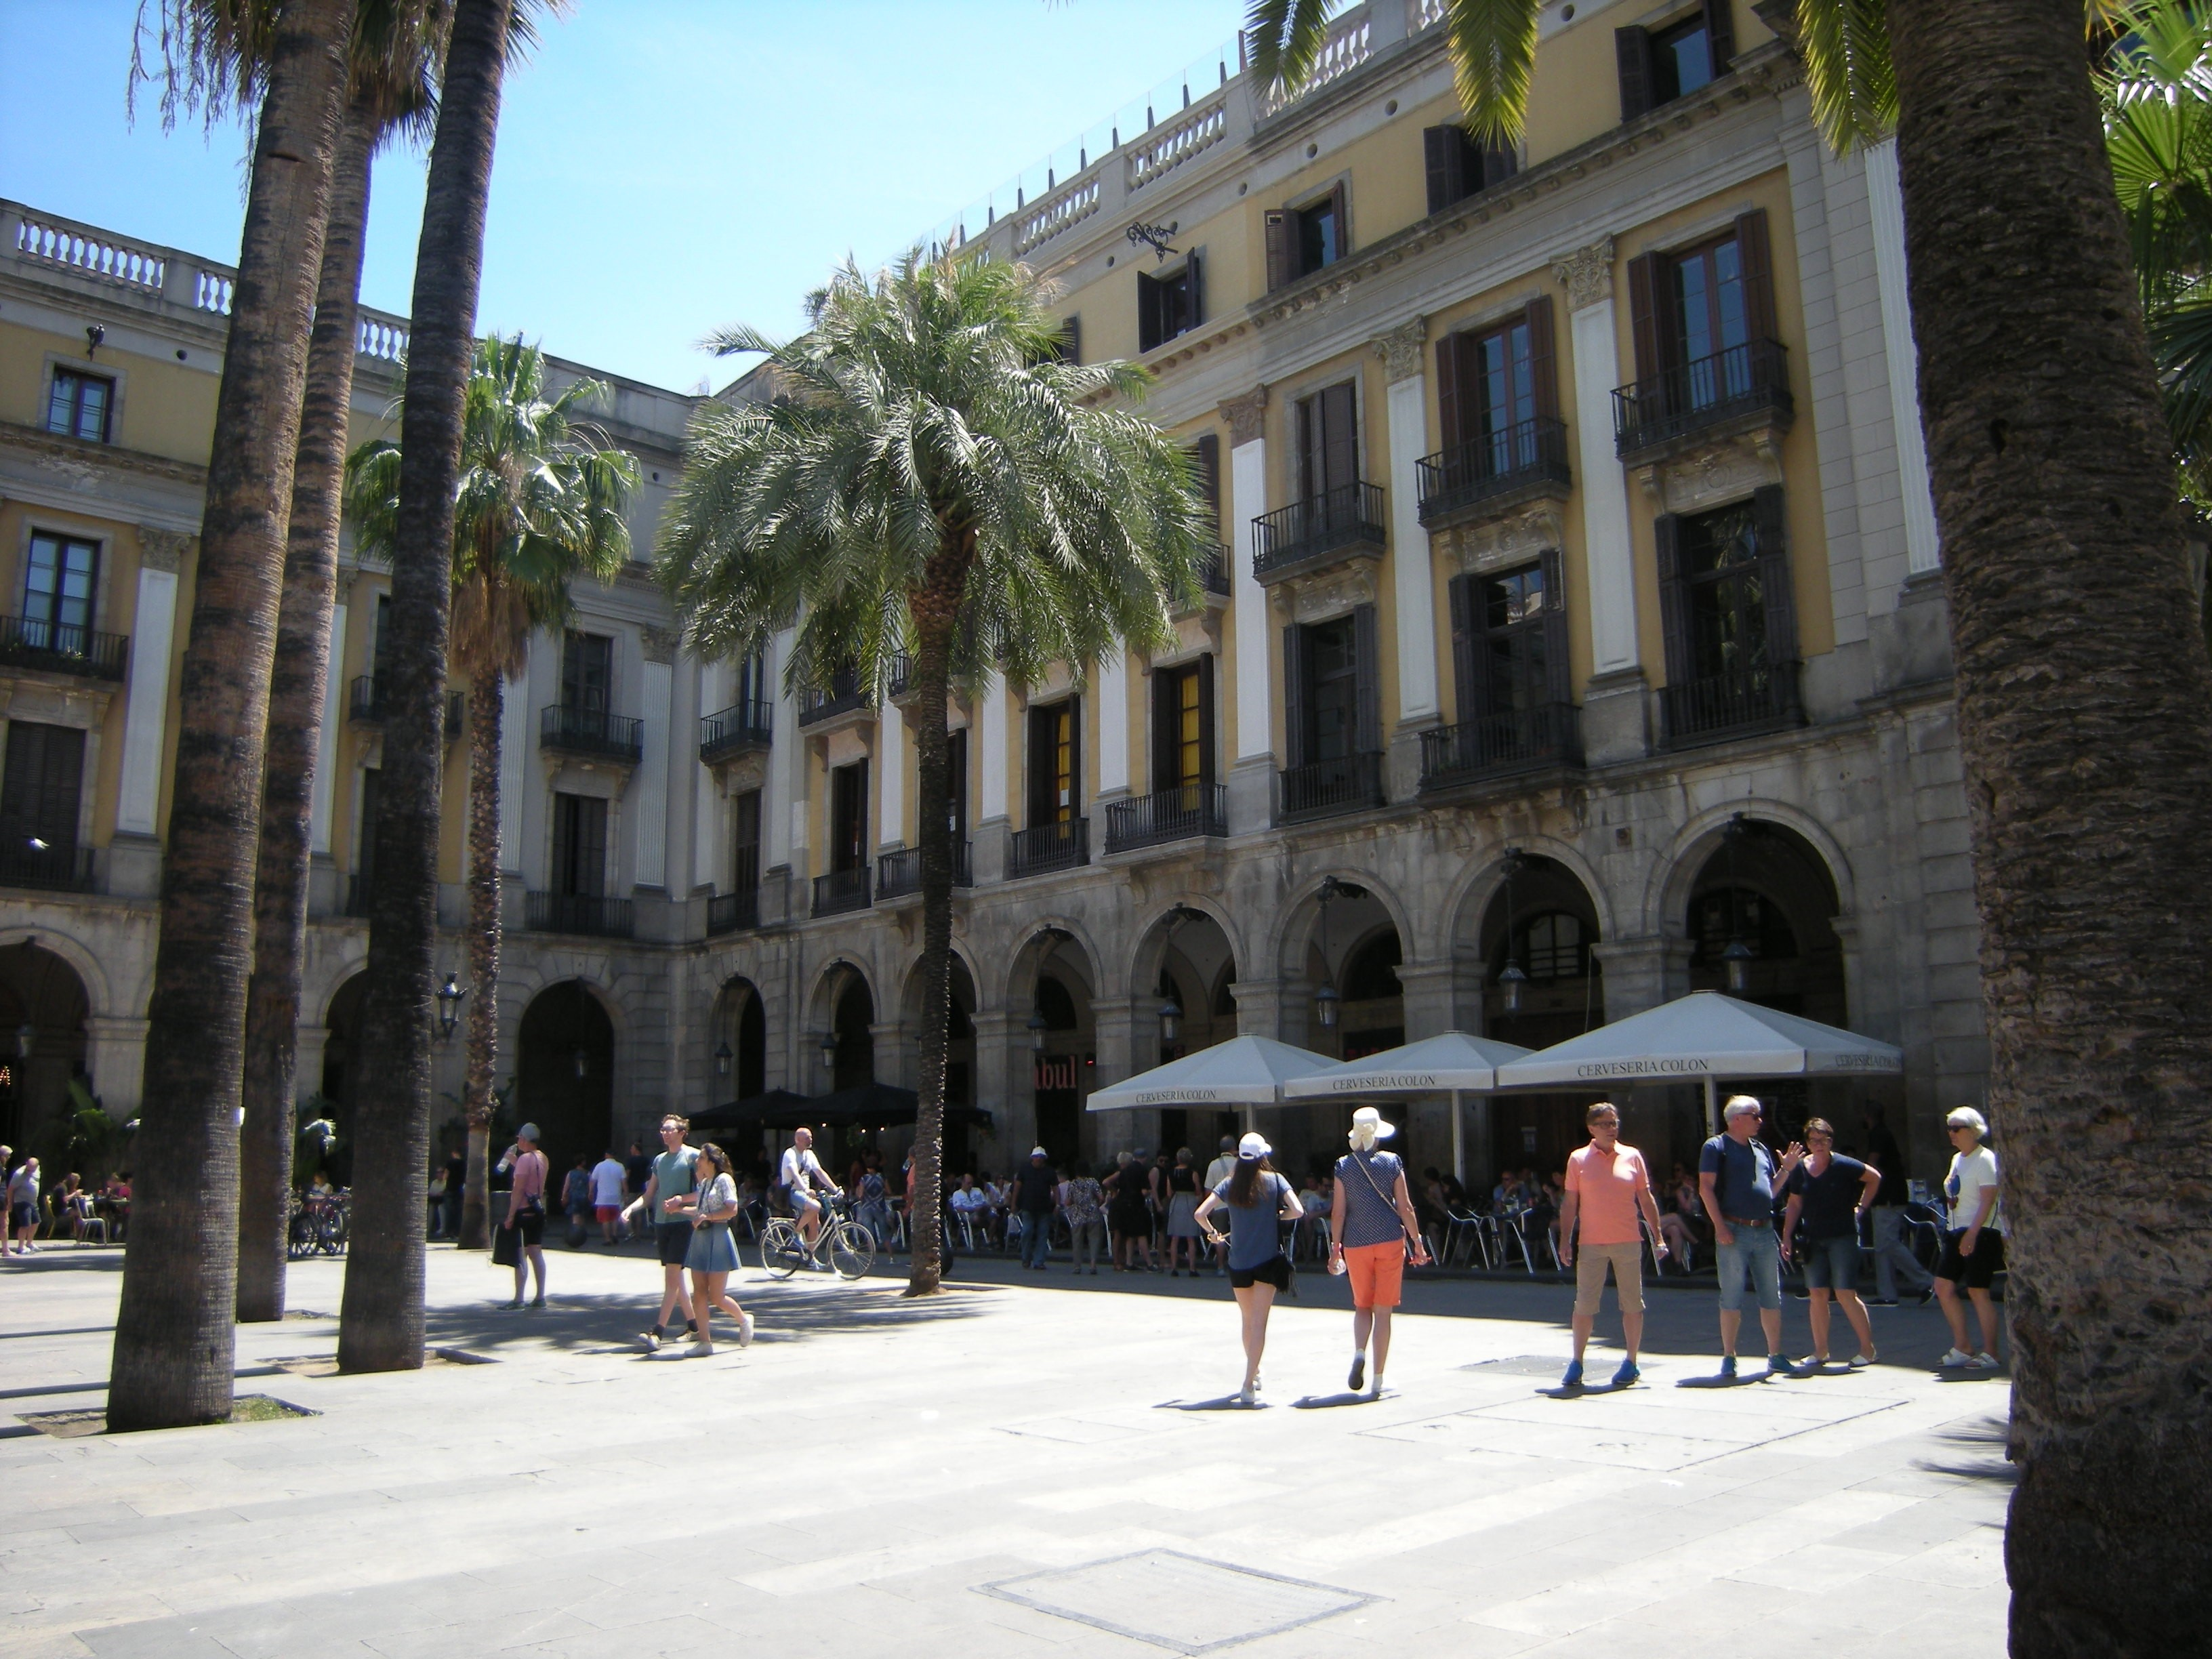 Plaza Real, Site of interest, Barcelona